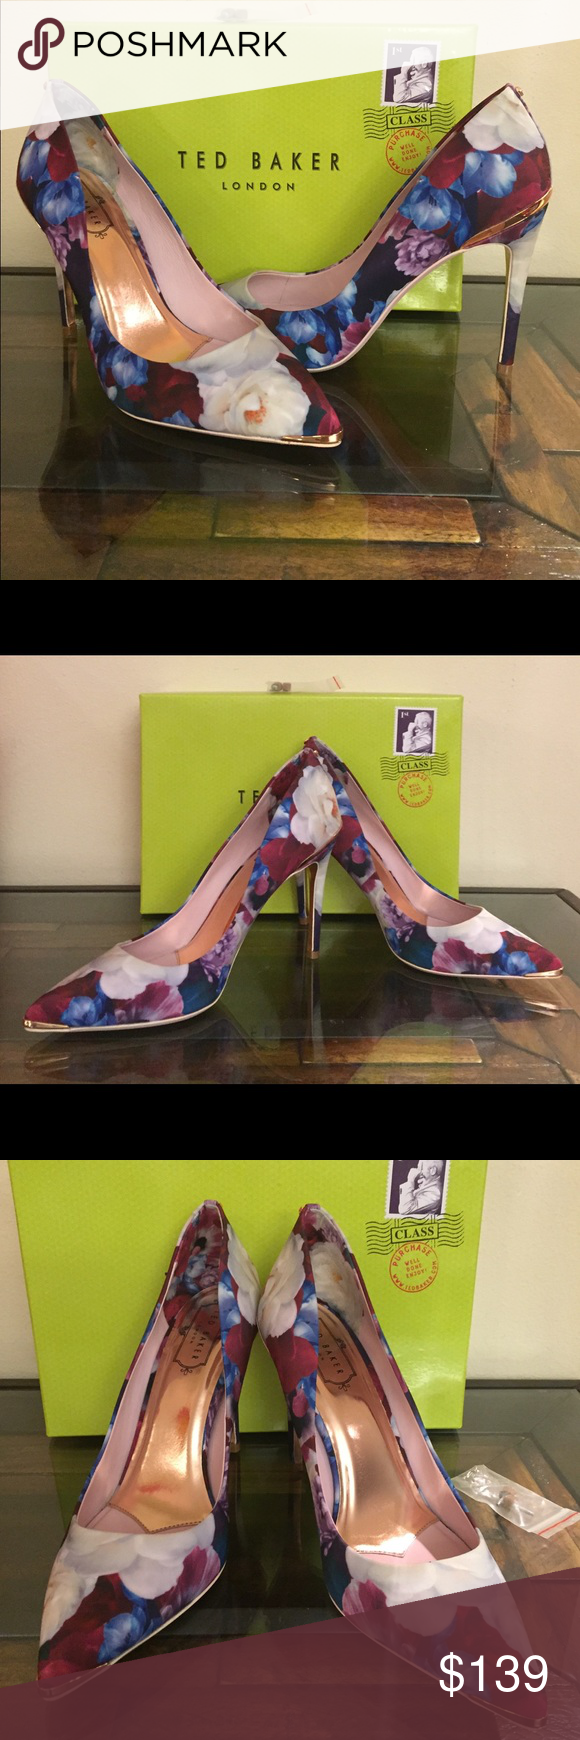 589d0955353171 Ted Baker Kaawap pointy toe blushing bouquet pump Ted Baker London s iconic  Blushing Bouquet pattern envelopes this gorgeous pointy-toe pump with his  ...